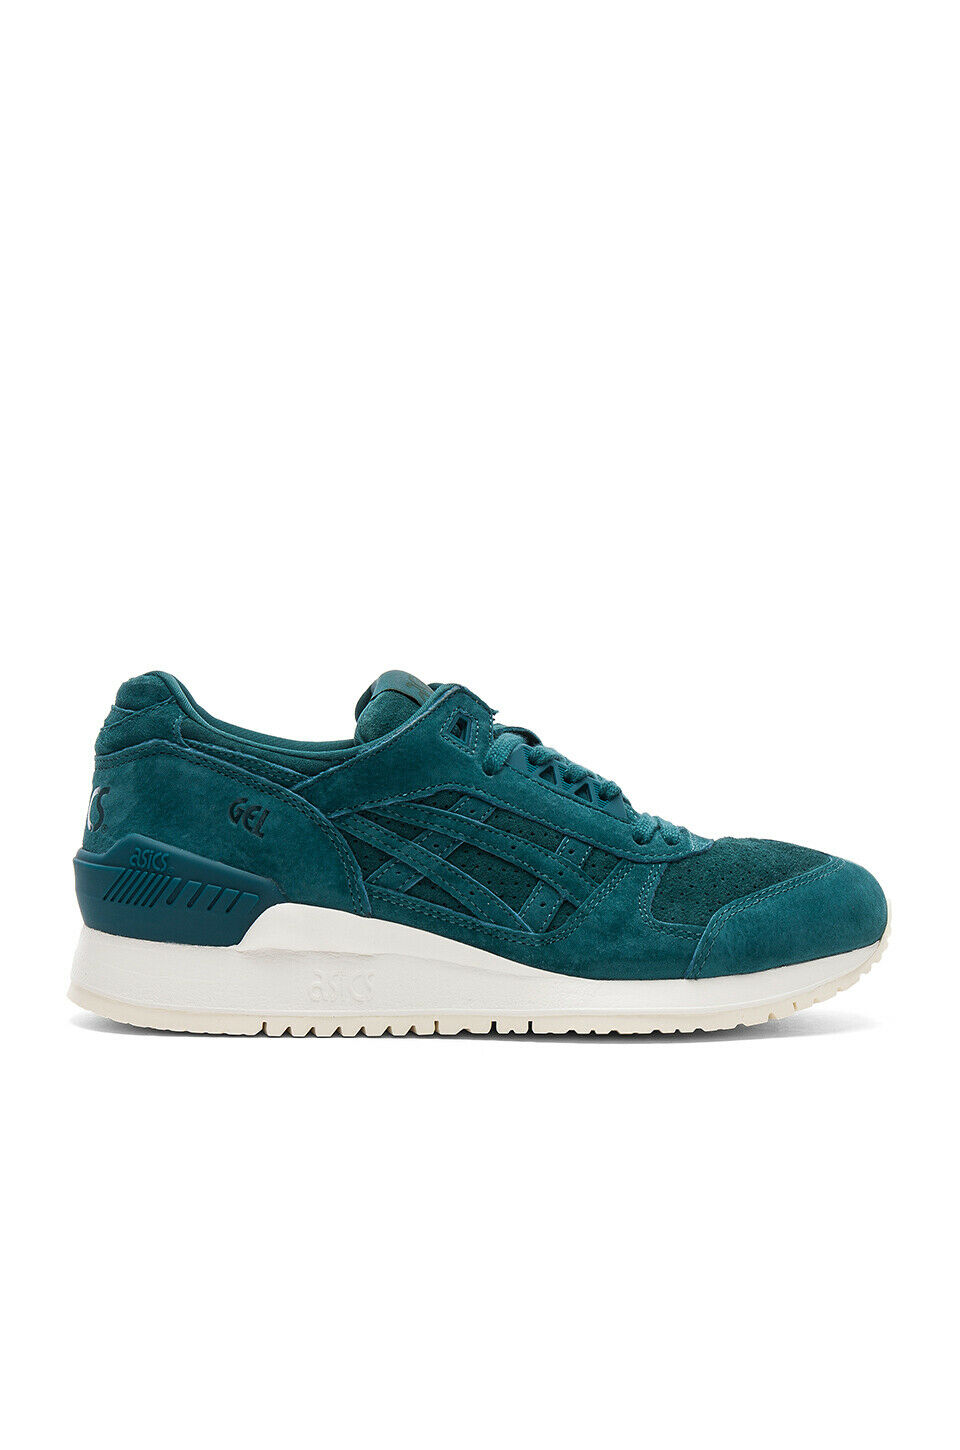 SALE MENS ASICS GEL RESPECTOR DEEP TEAL H7T0L 5858 BRAND NEW IN BOX SHOES